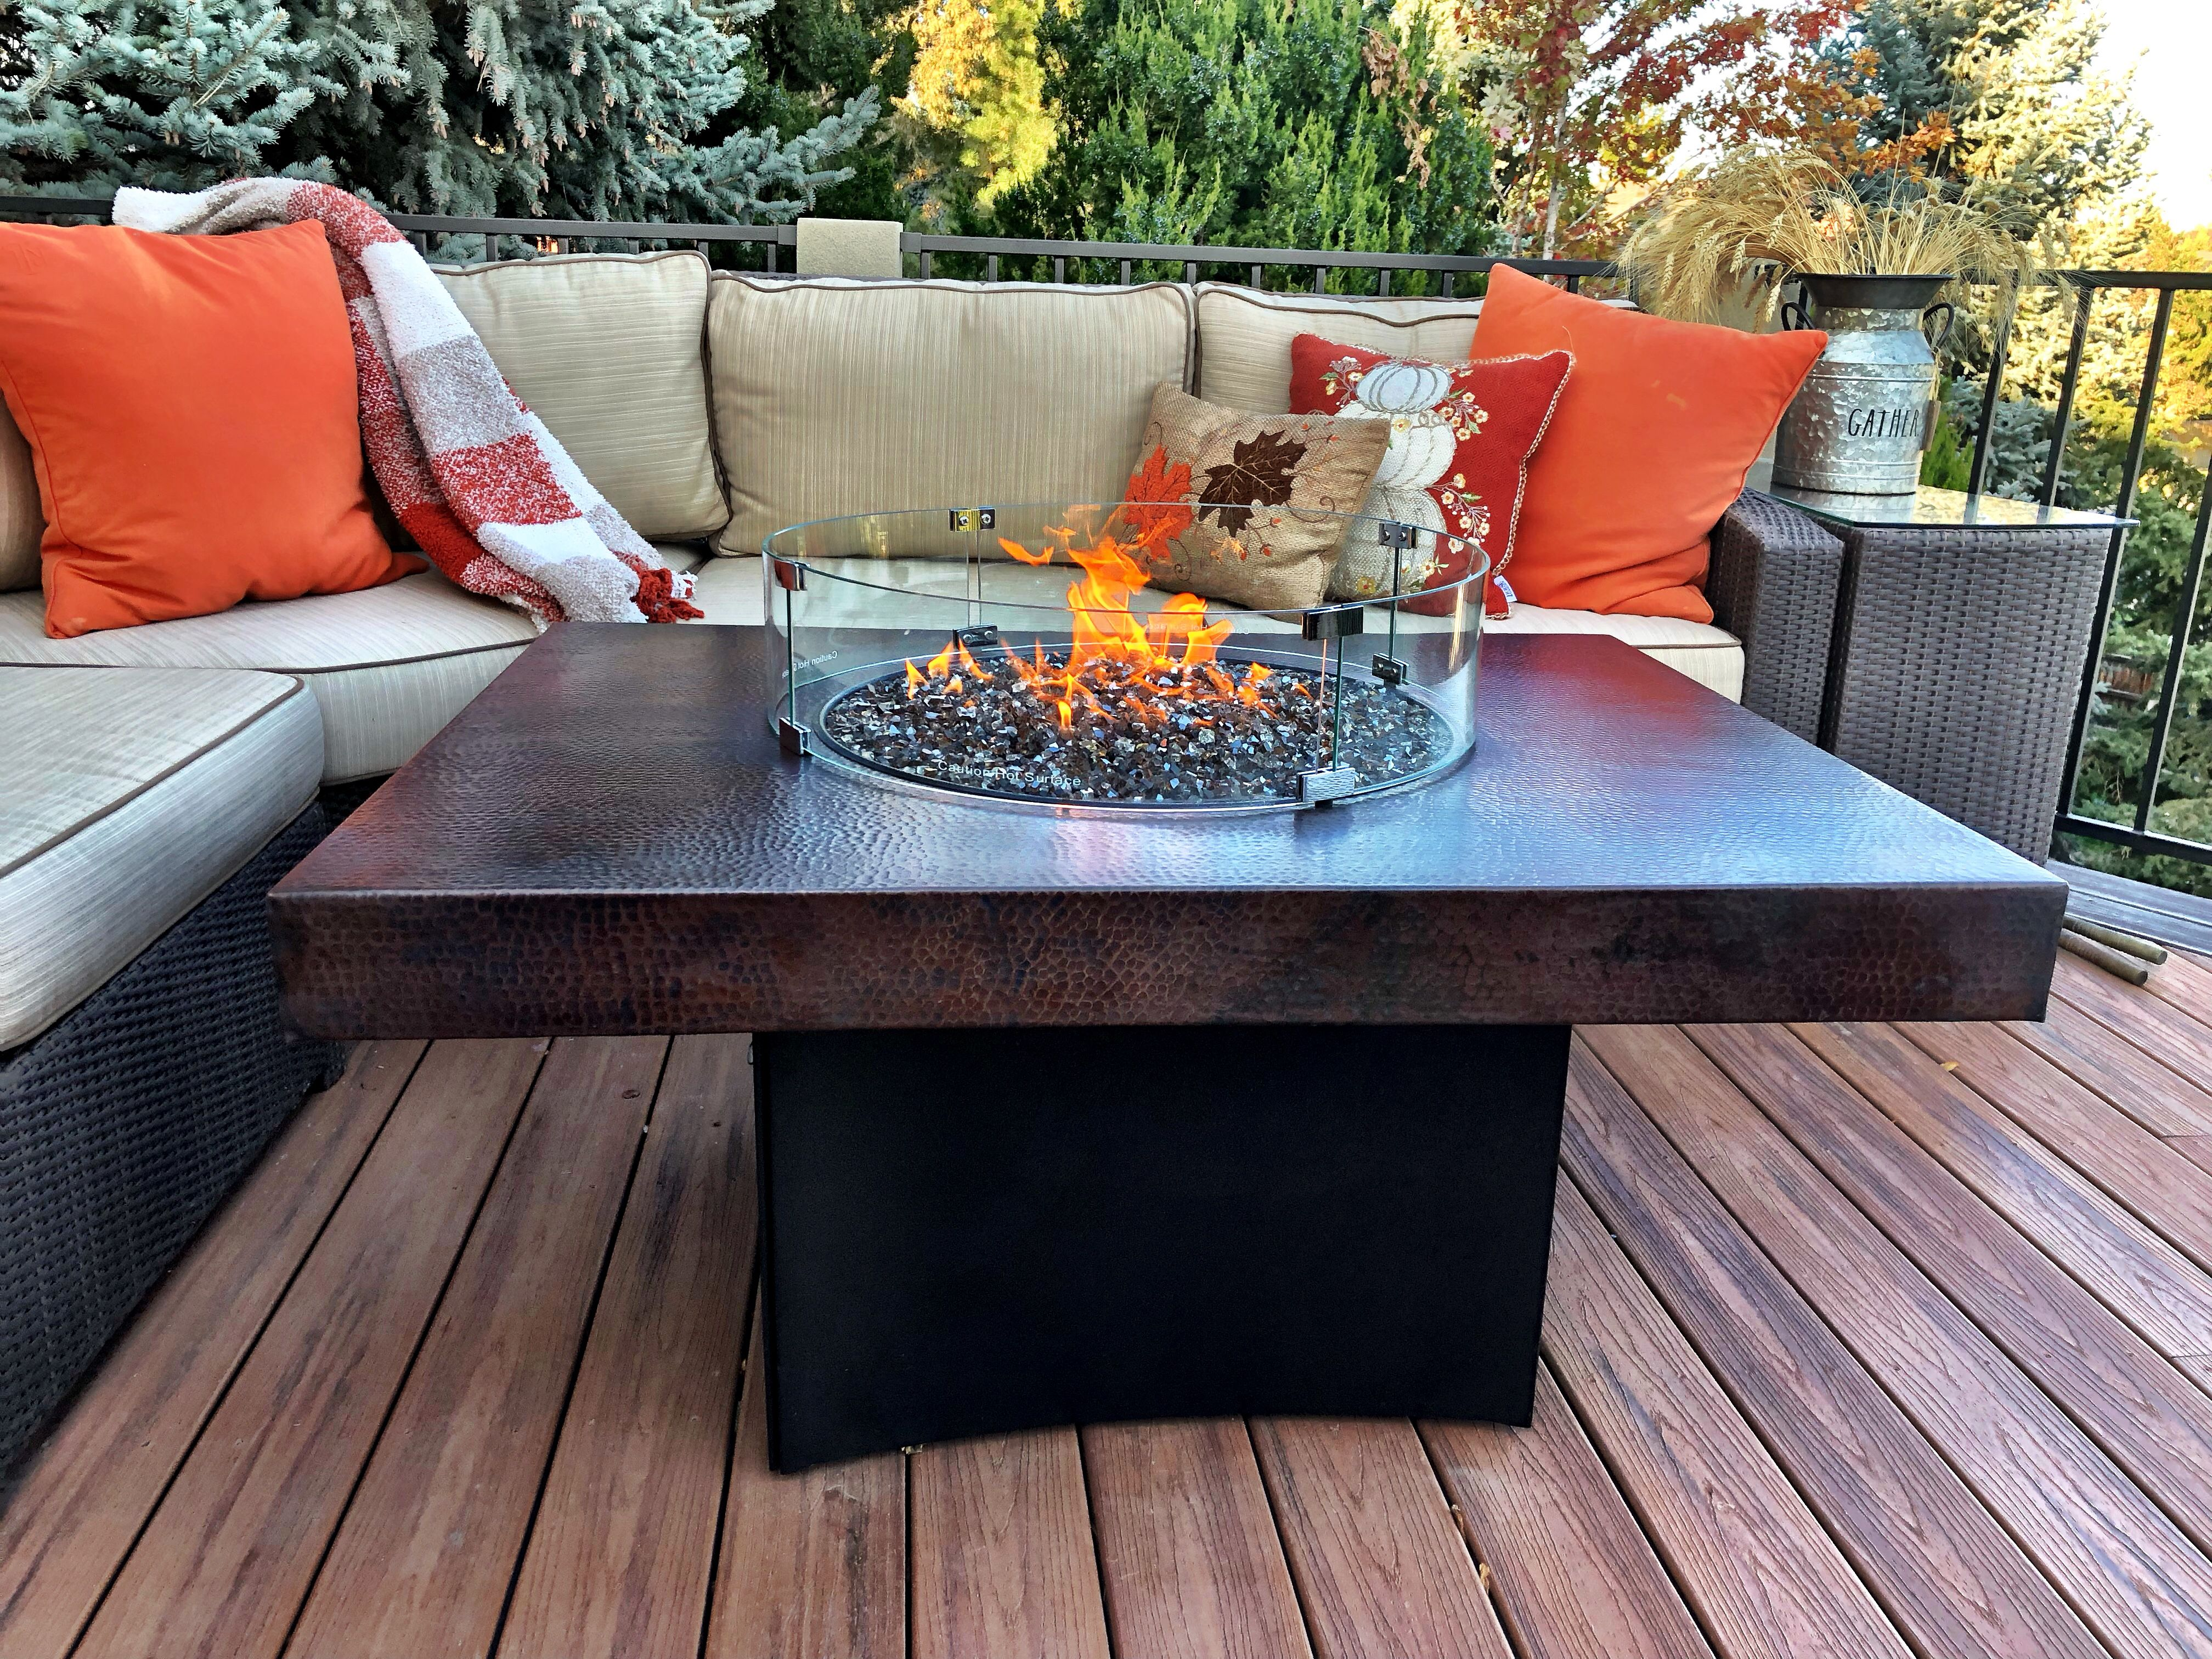 Oriflamme Rectangle Gas Fire Pit Table Hammered Copper Gas Fire Pit Table Gas Firepit Fire Pit Table